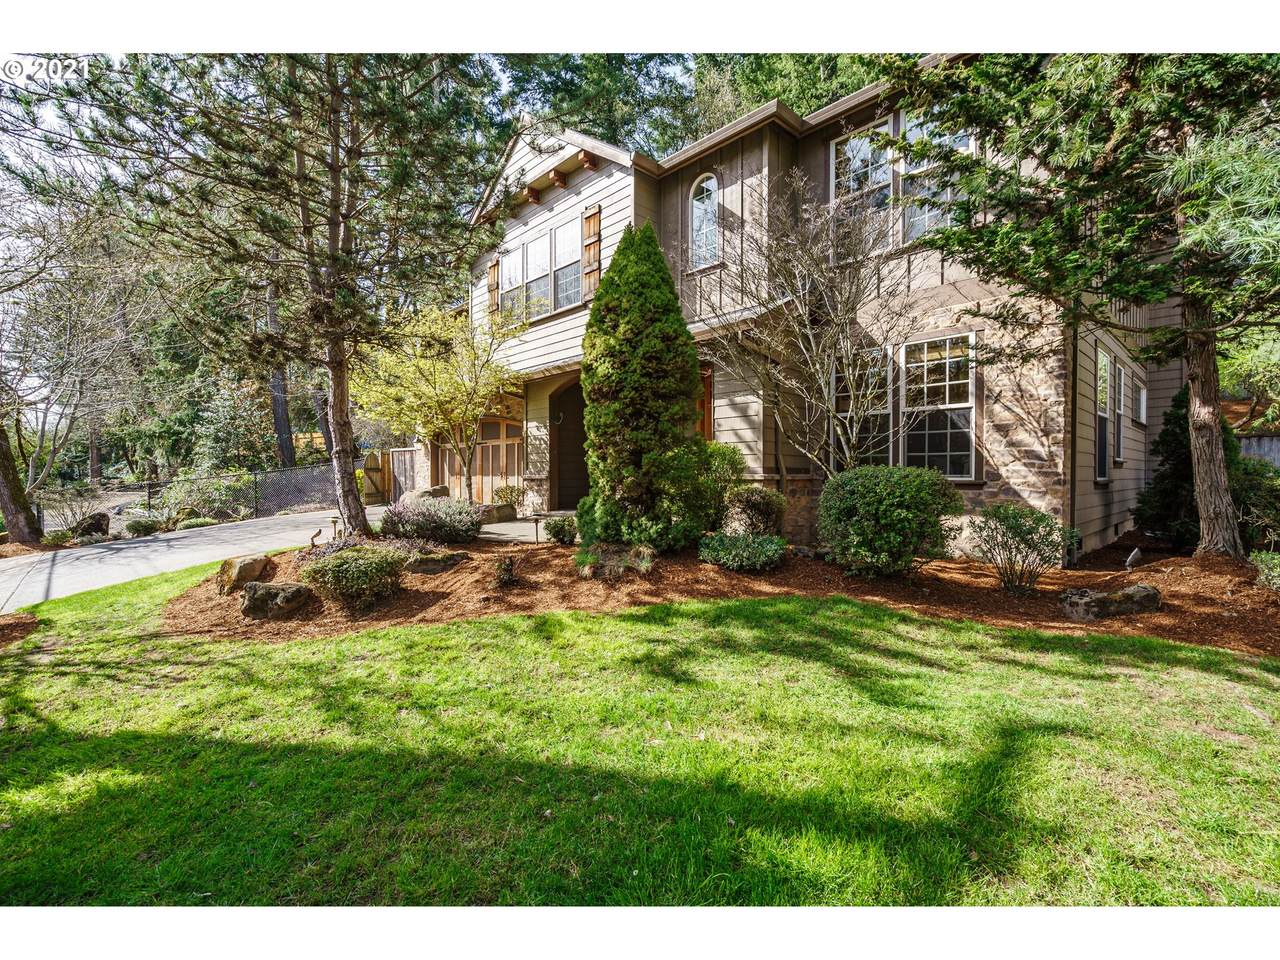 19233 Indian Springs Rd - Photo 1